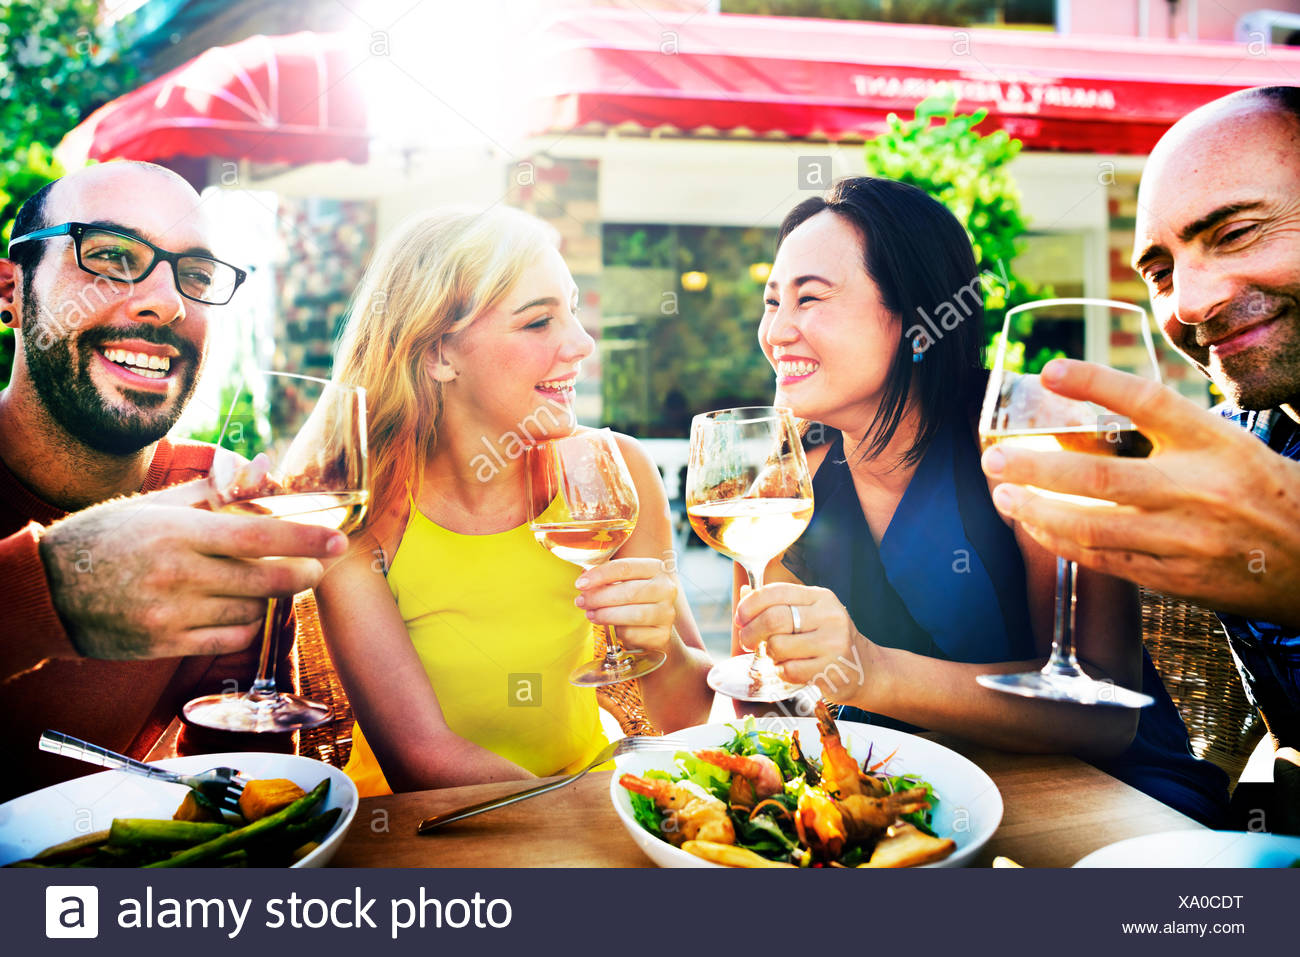 Friend Friendship Dining Celebration Hanging out Concept - Stock Image